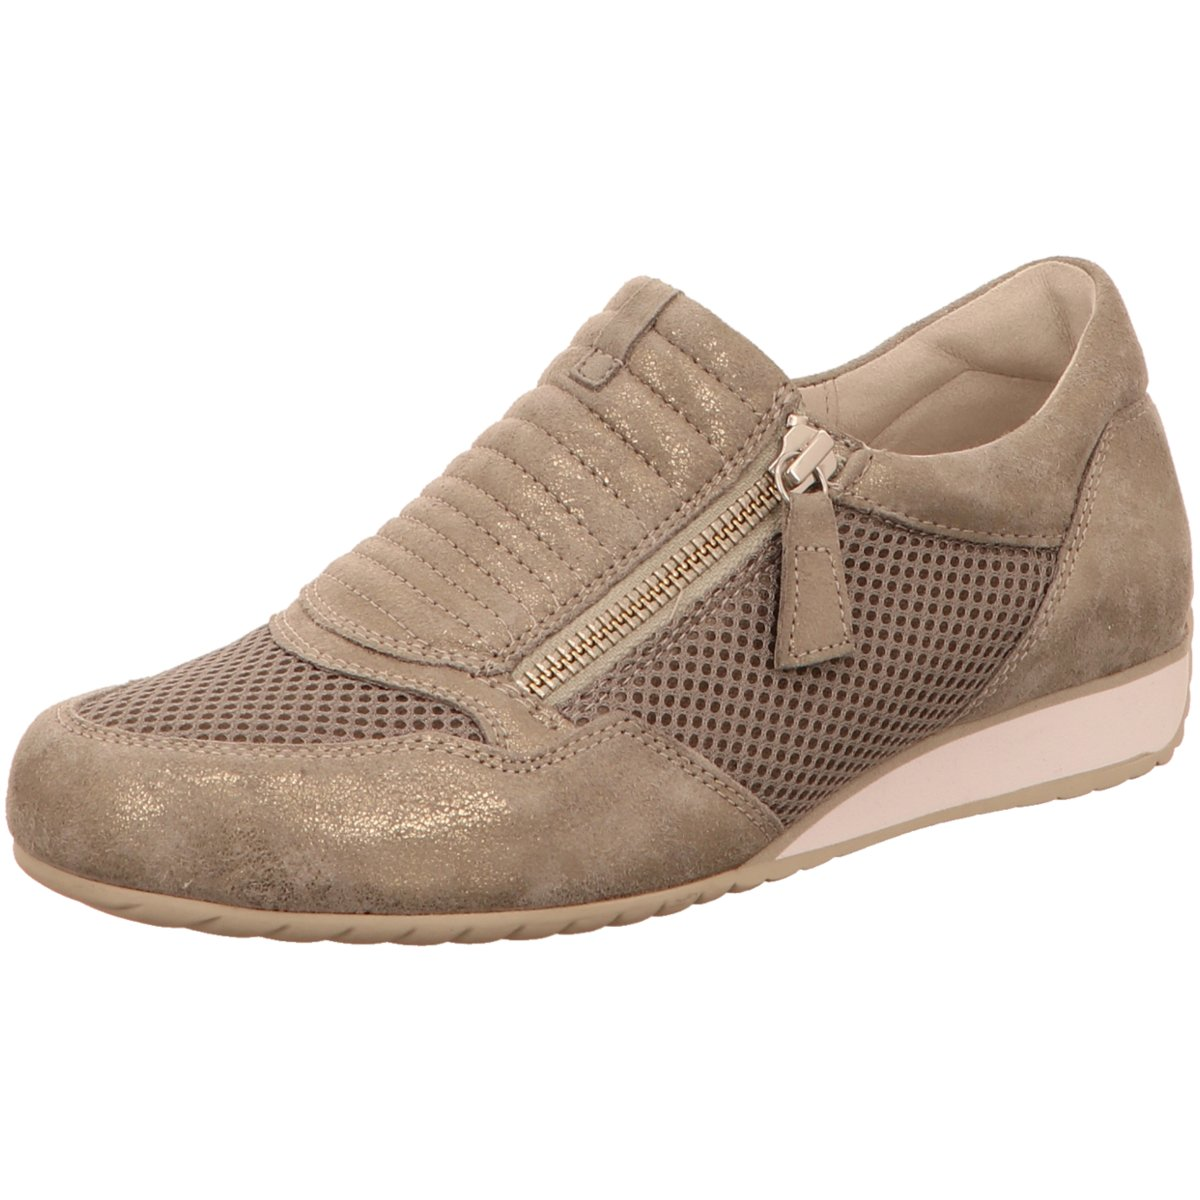 Gabor Damen Slipper 86-352-93 grau 400042